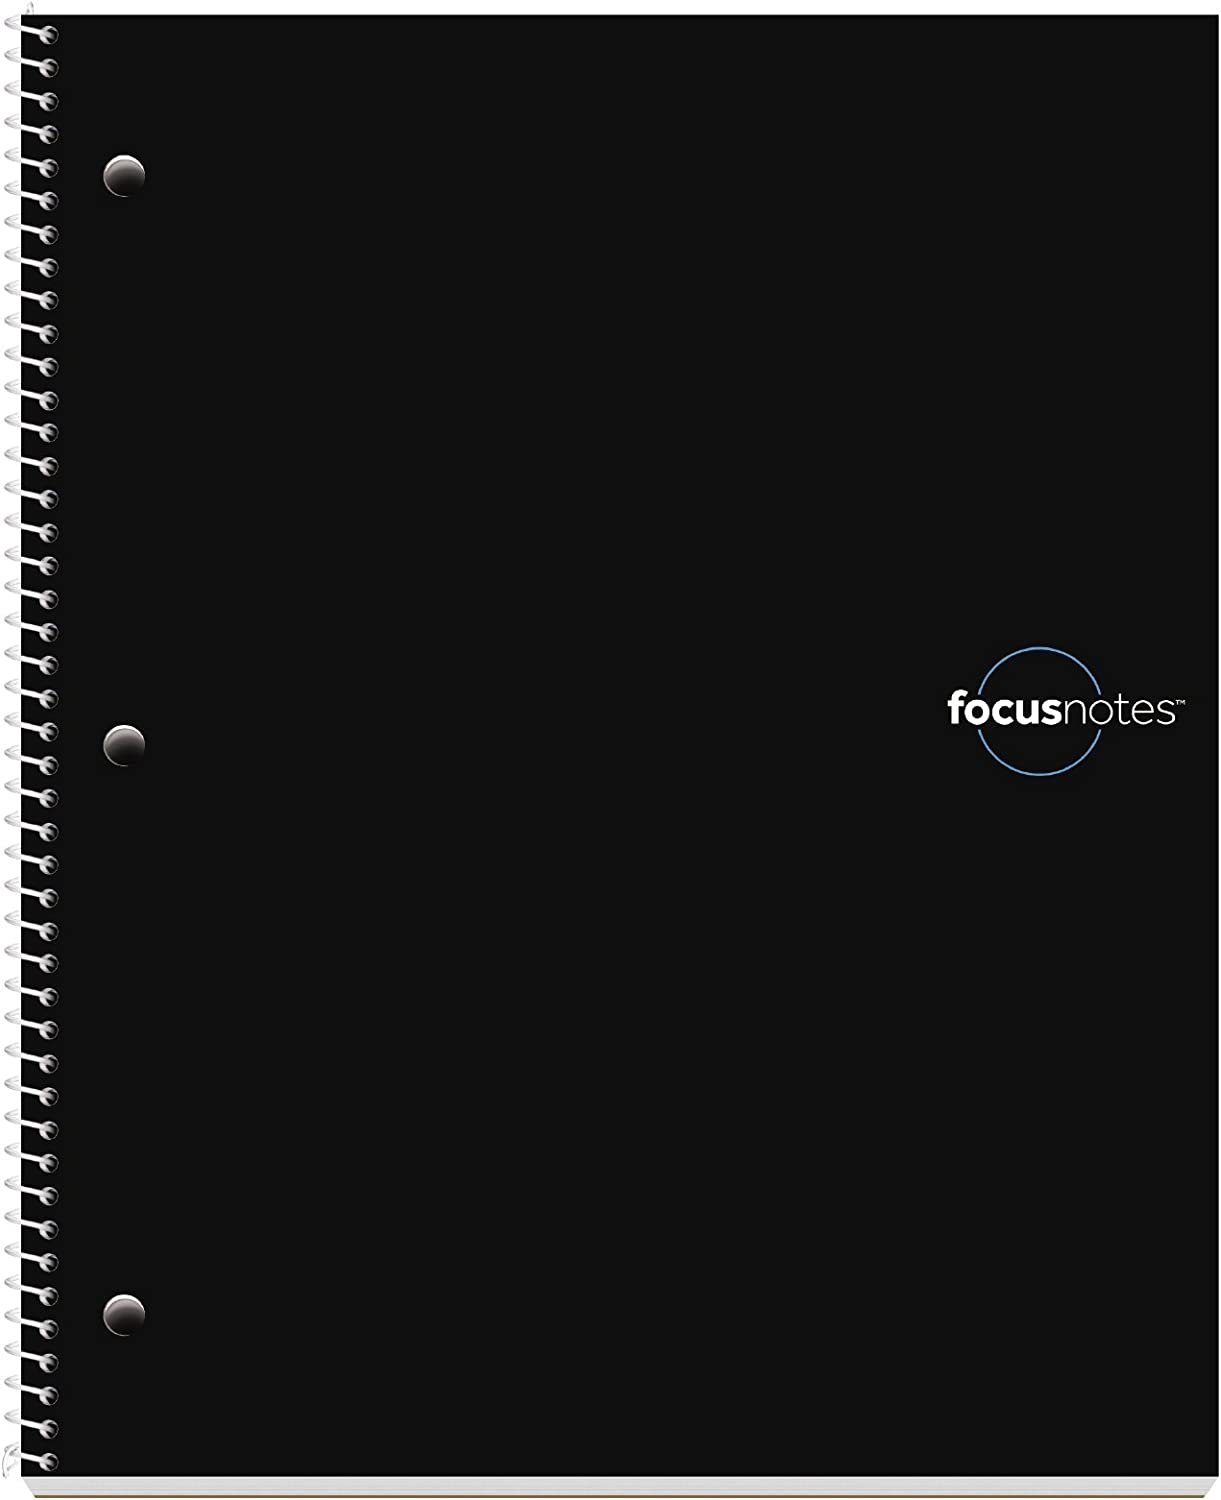 TOPS FocusNotes Note Taking System 1-Subject Notebook, 11 x 9 Inches, White, 100 Sheets (90223) - Black